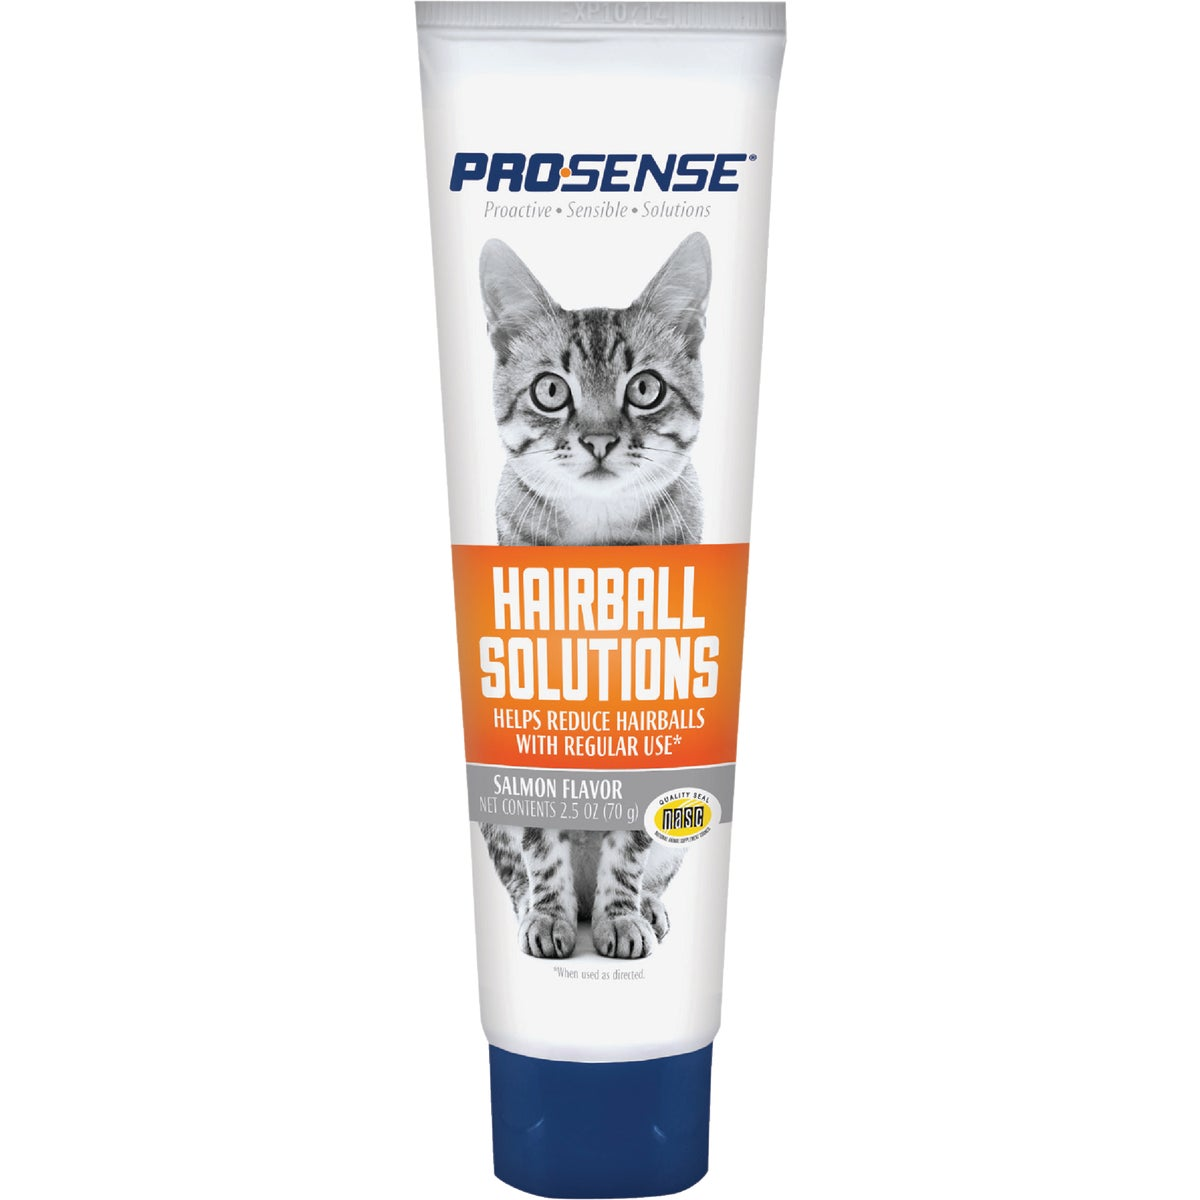 CAT HAIRBALL ELIM PST - P-82623 by United Pet Group